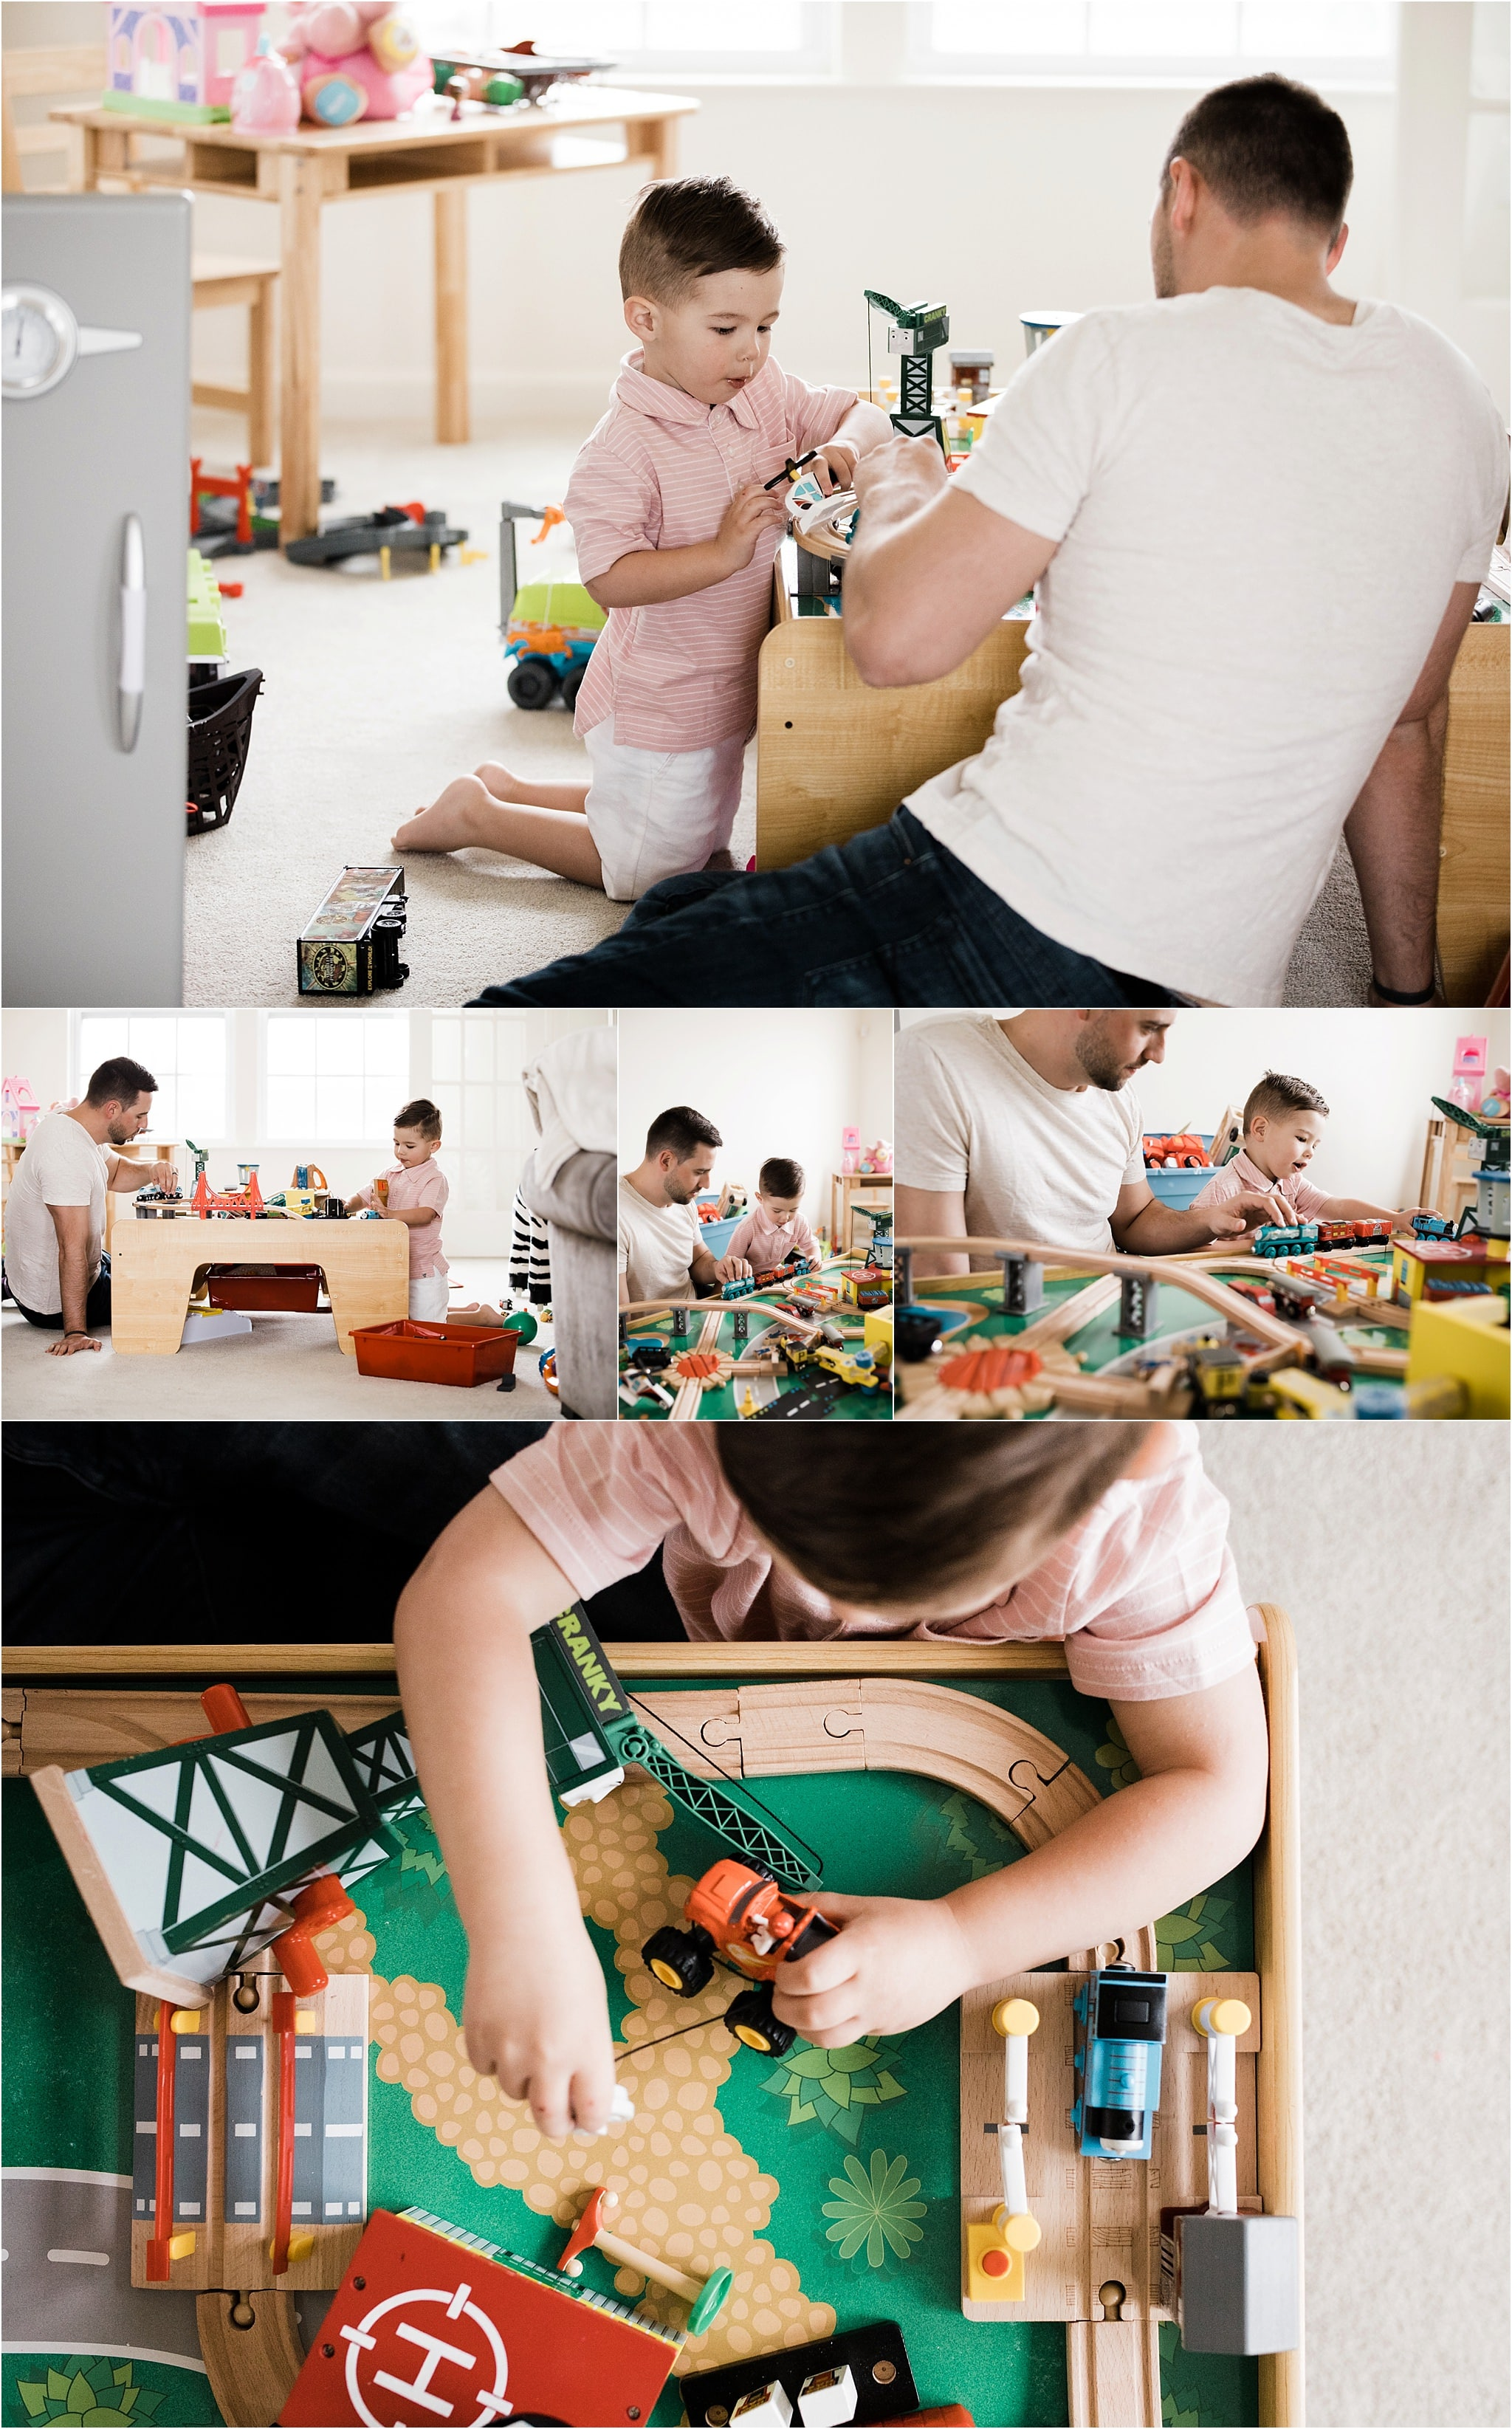 father and son playing with train table at home